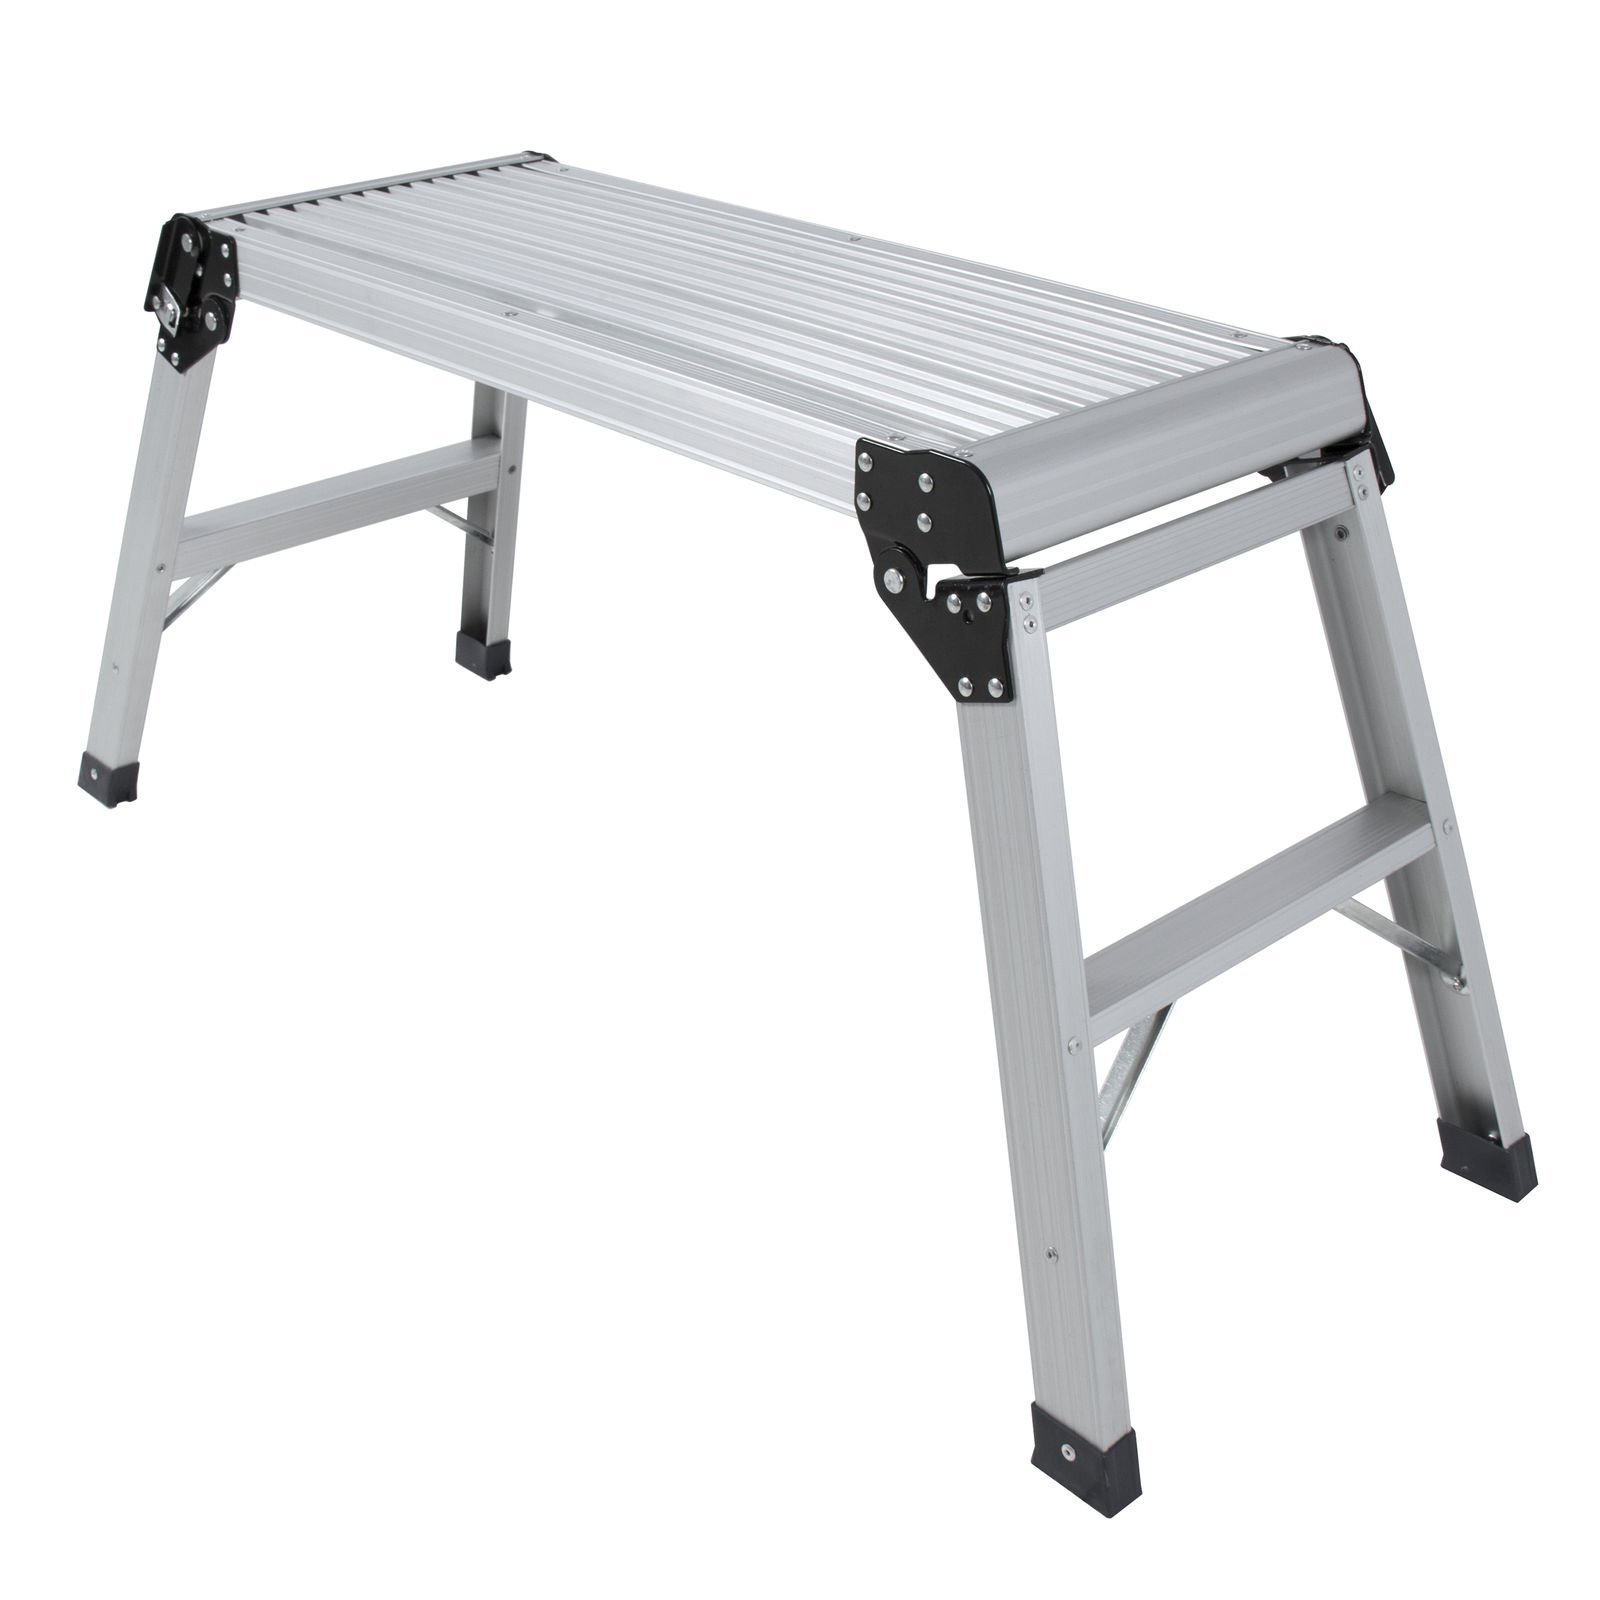 Anti Slip Aluminum Platform Drywall Step Up Folding Work Bench Stool Ladder | Heavy Duty Large Load Capacity Prevents Slipping Locking Legs | Ideal for Washing Vehicles Cleaning Windows Home Tool